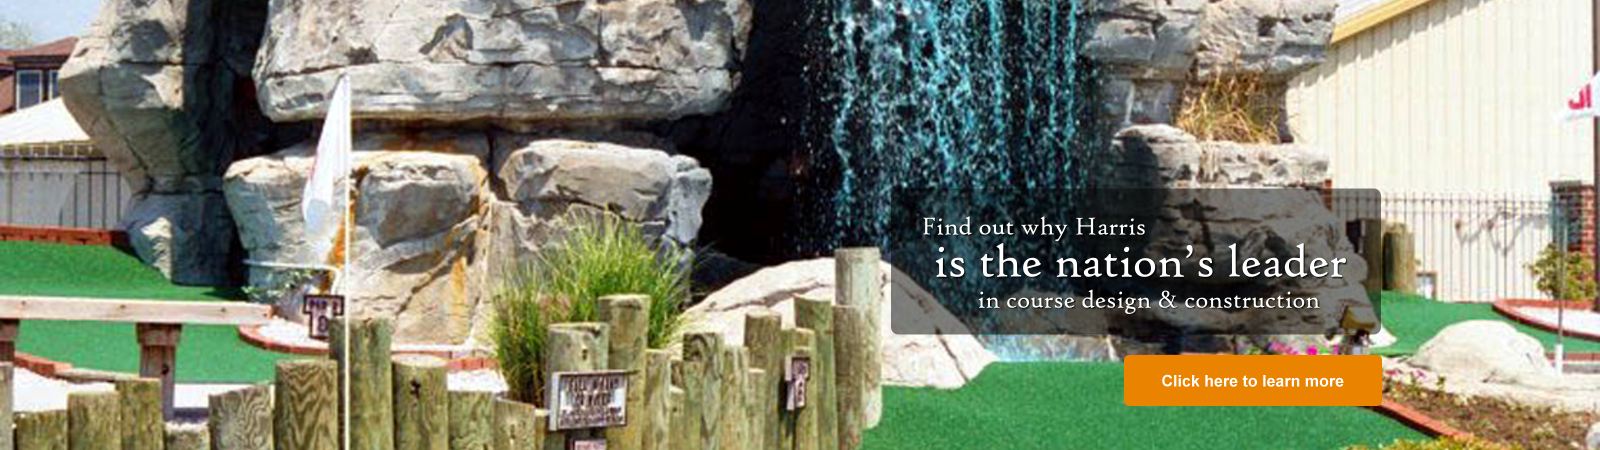 nations leader in mini golf